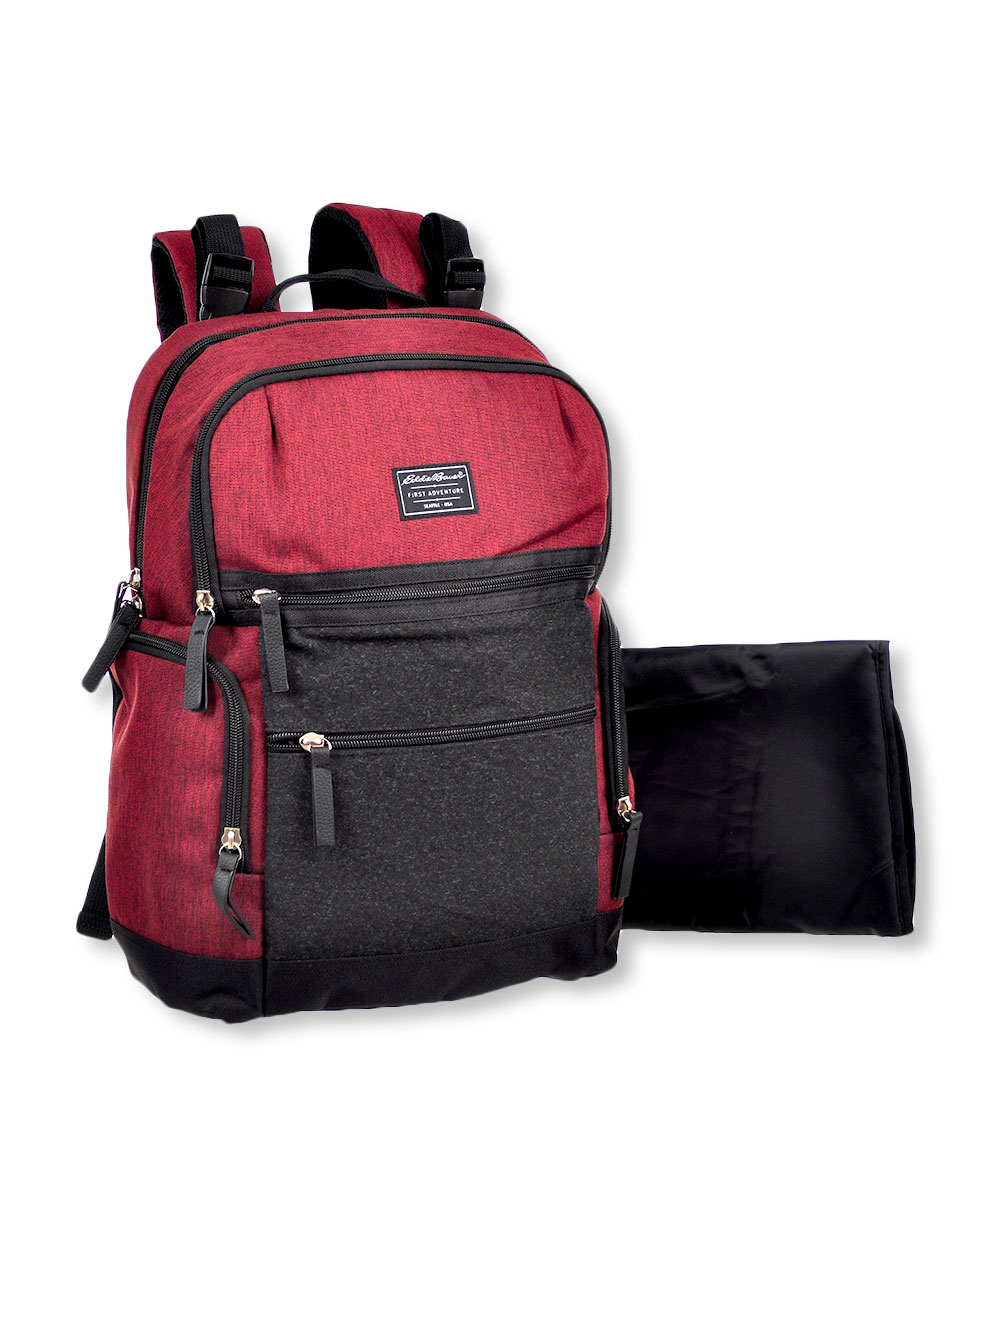 Diaper Bags Diaper Backpack